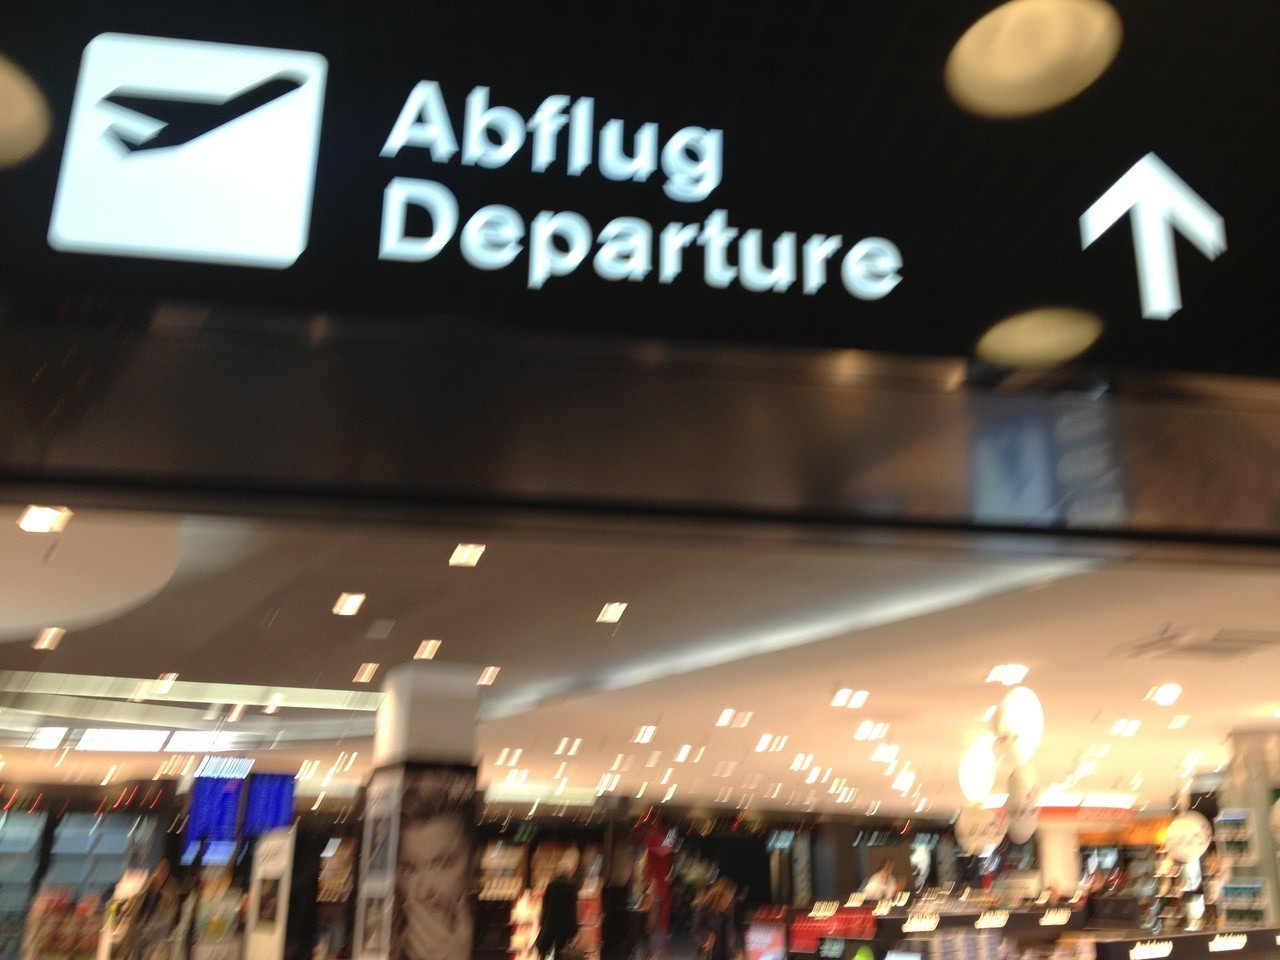 Boxing Day, 26th Dec 2012, I am wrenched from home and loved ones to the airport ... — at Zürich Airport.